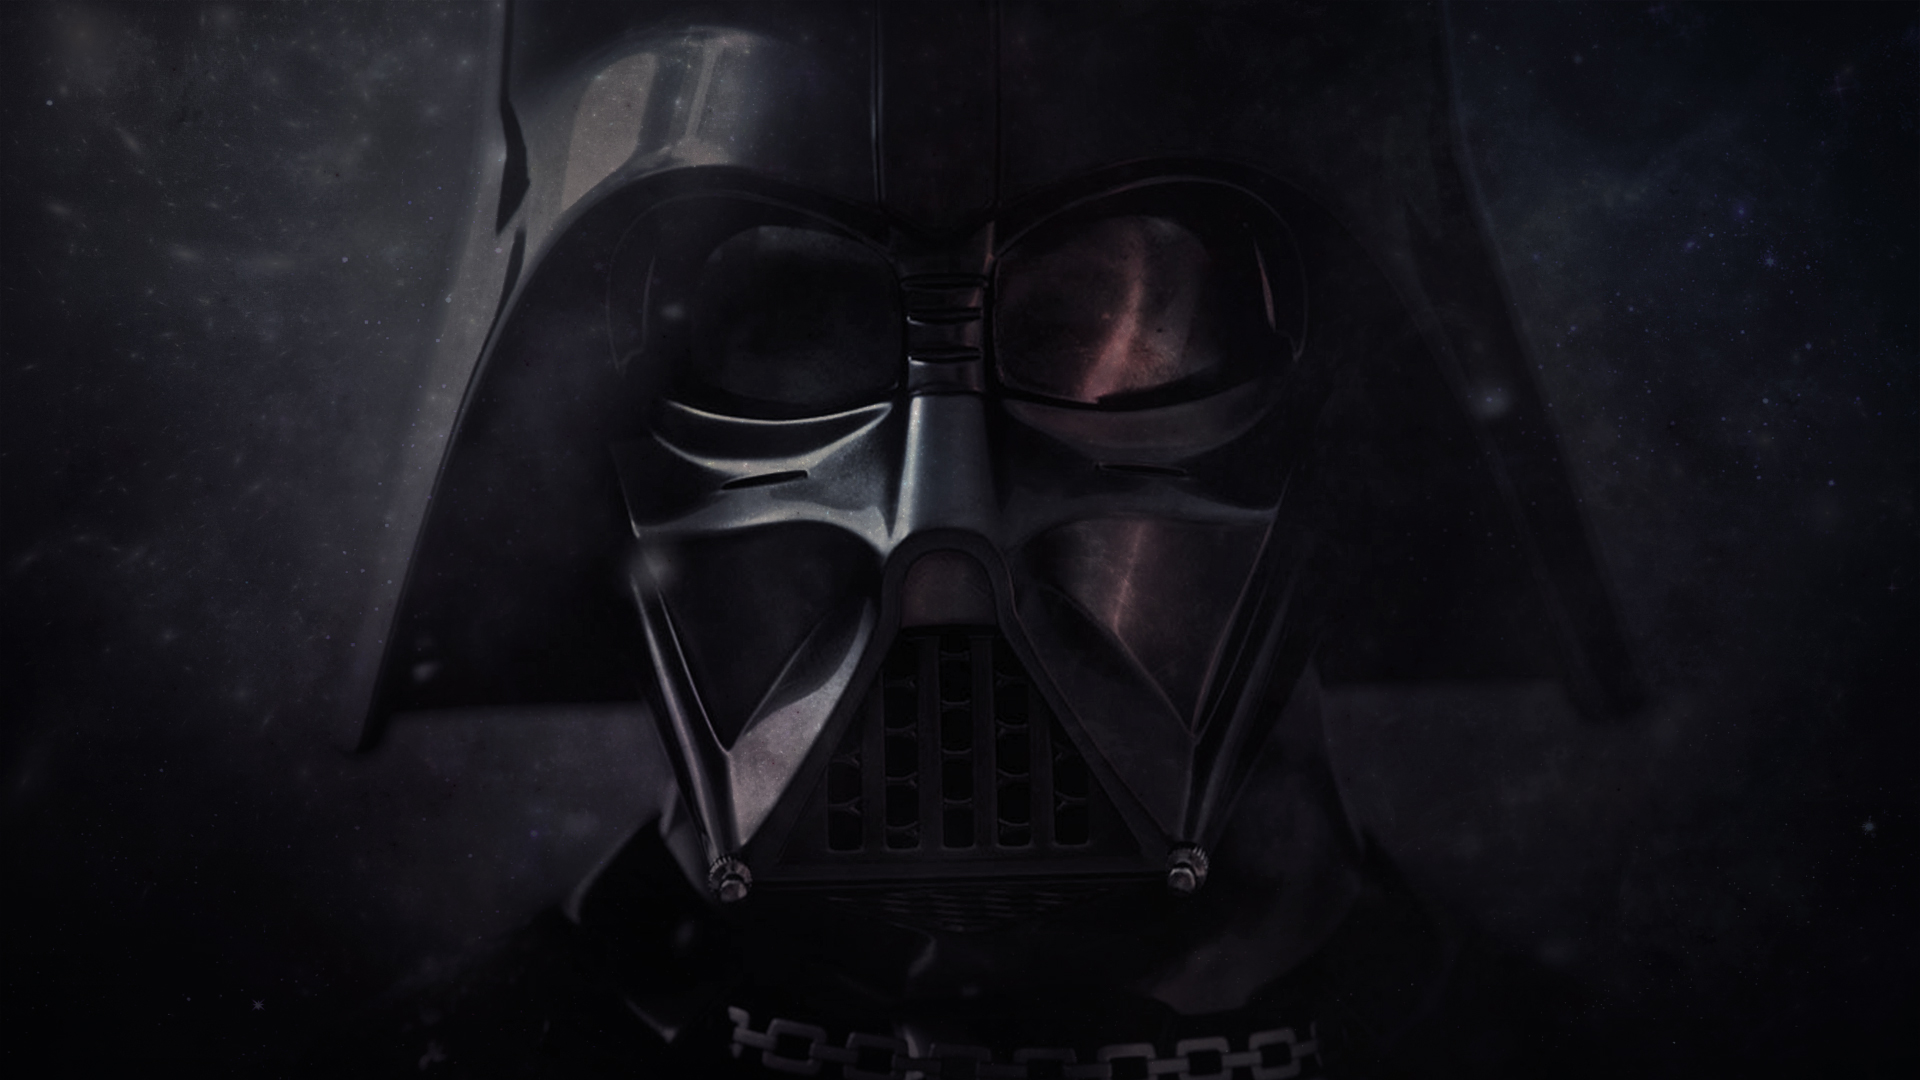 Wallpaper 1080p Darth Vader By Iamsointense On